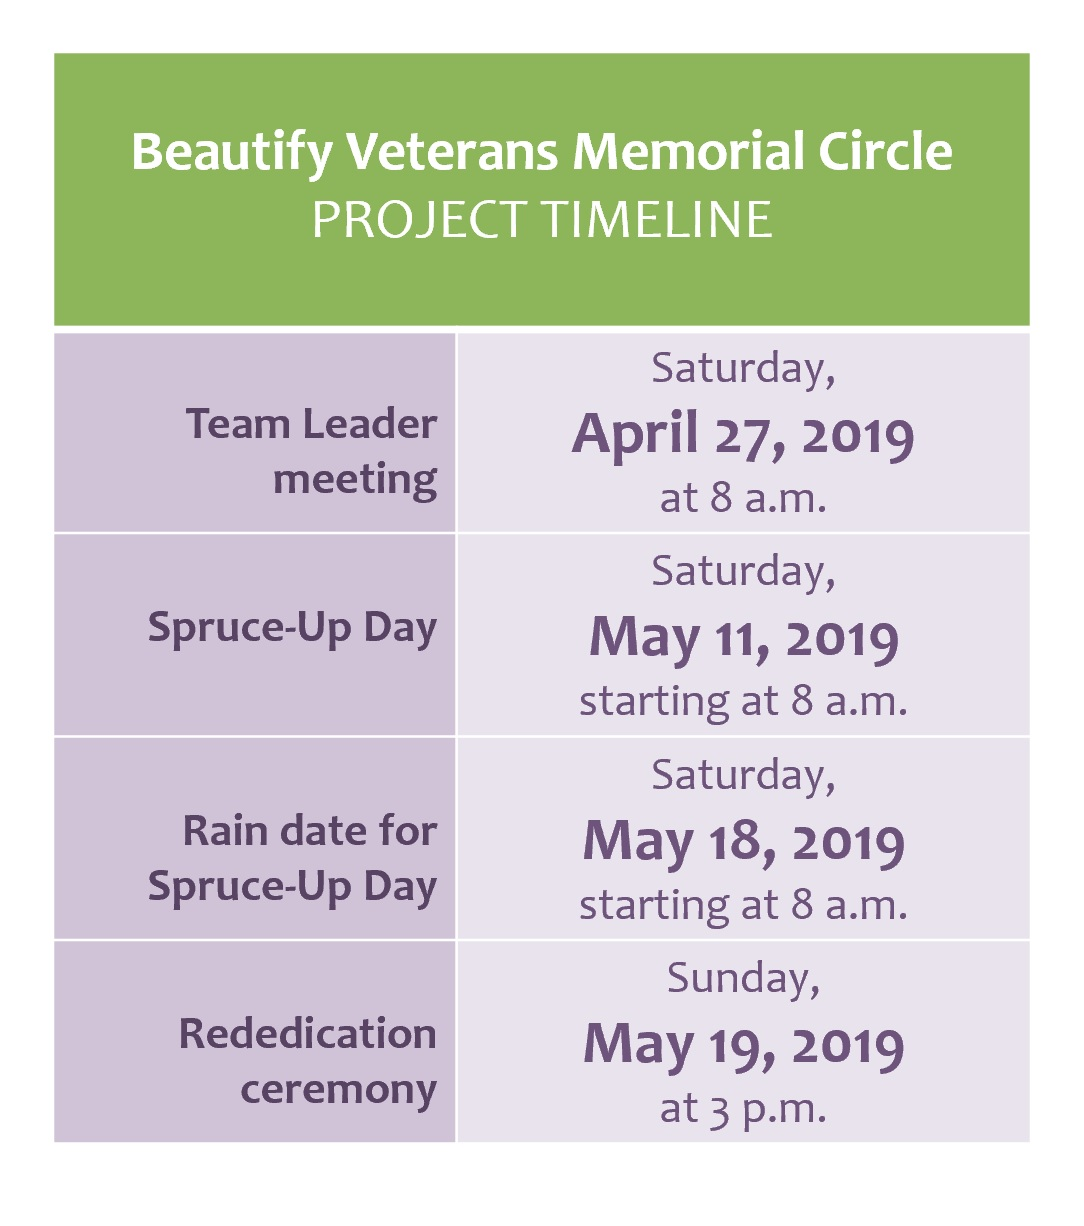 Project timeline_Beautify Veterans Memorial Circle in Rockford Illinois